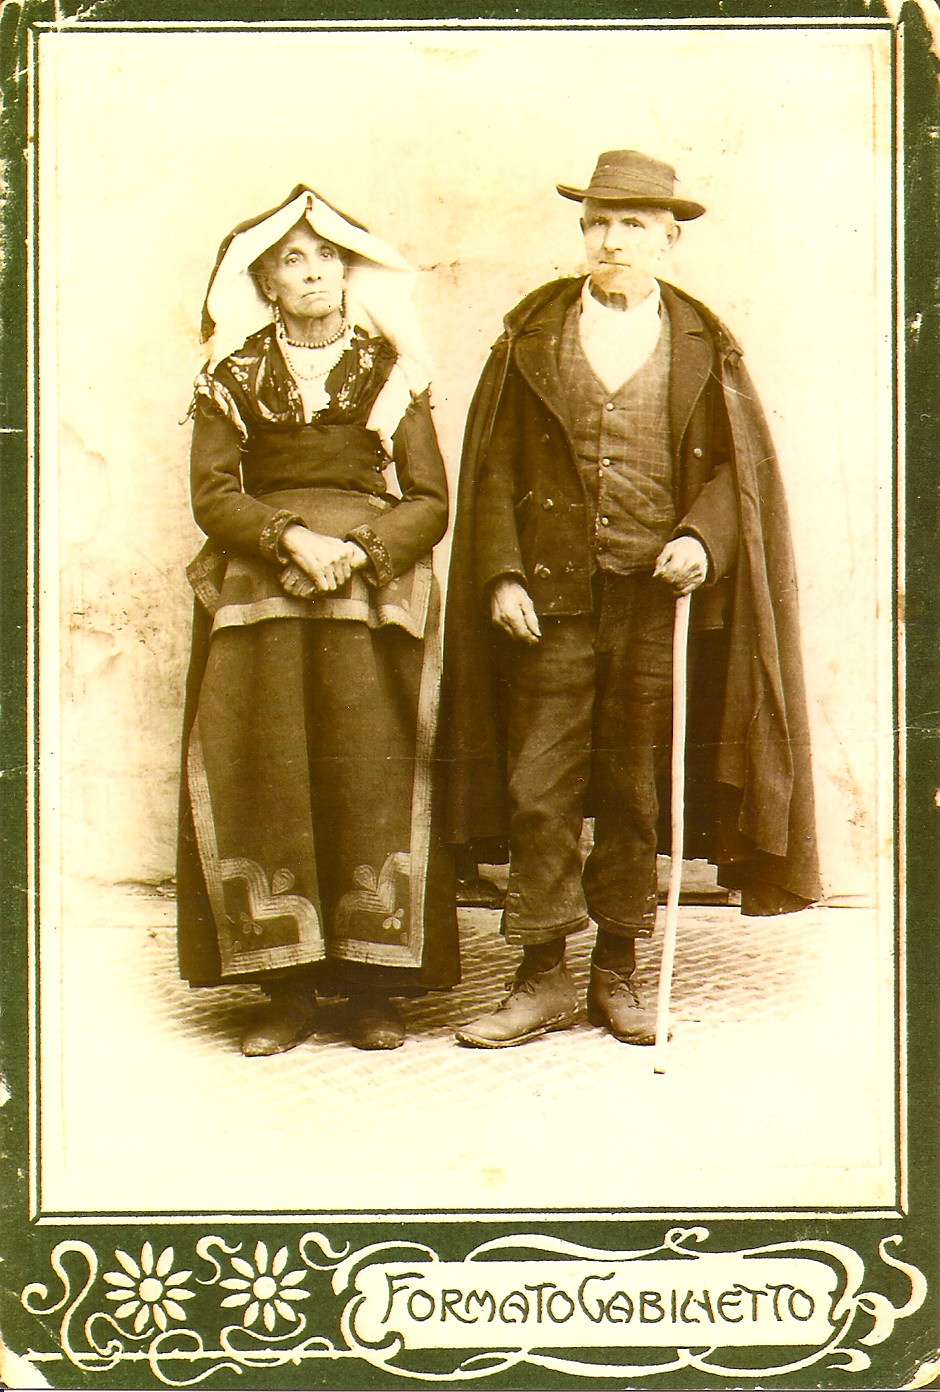 My maternal great-great-great grandparents, in Italy circa 1860s